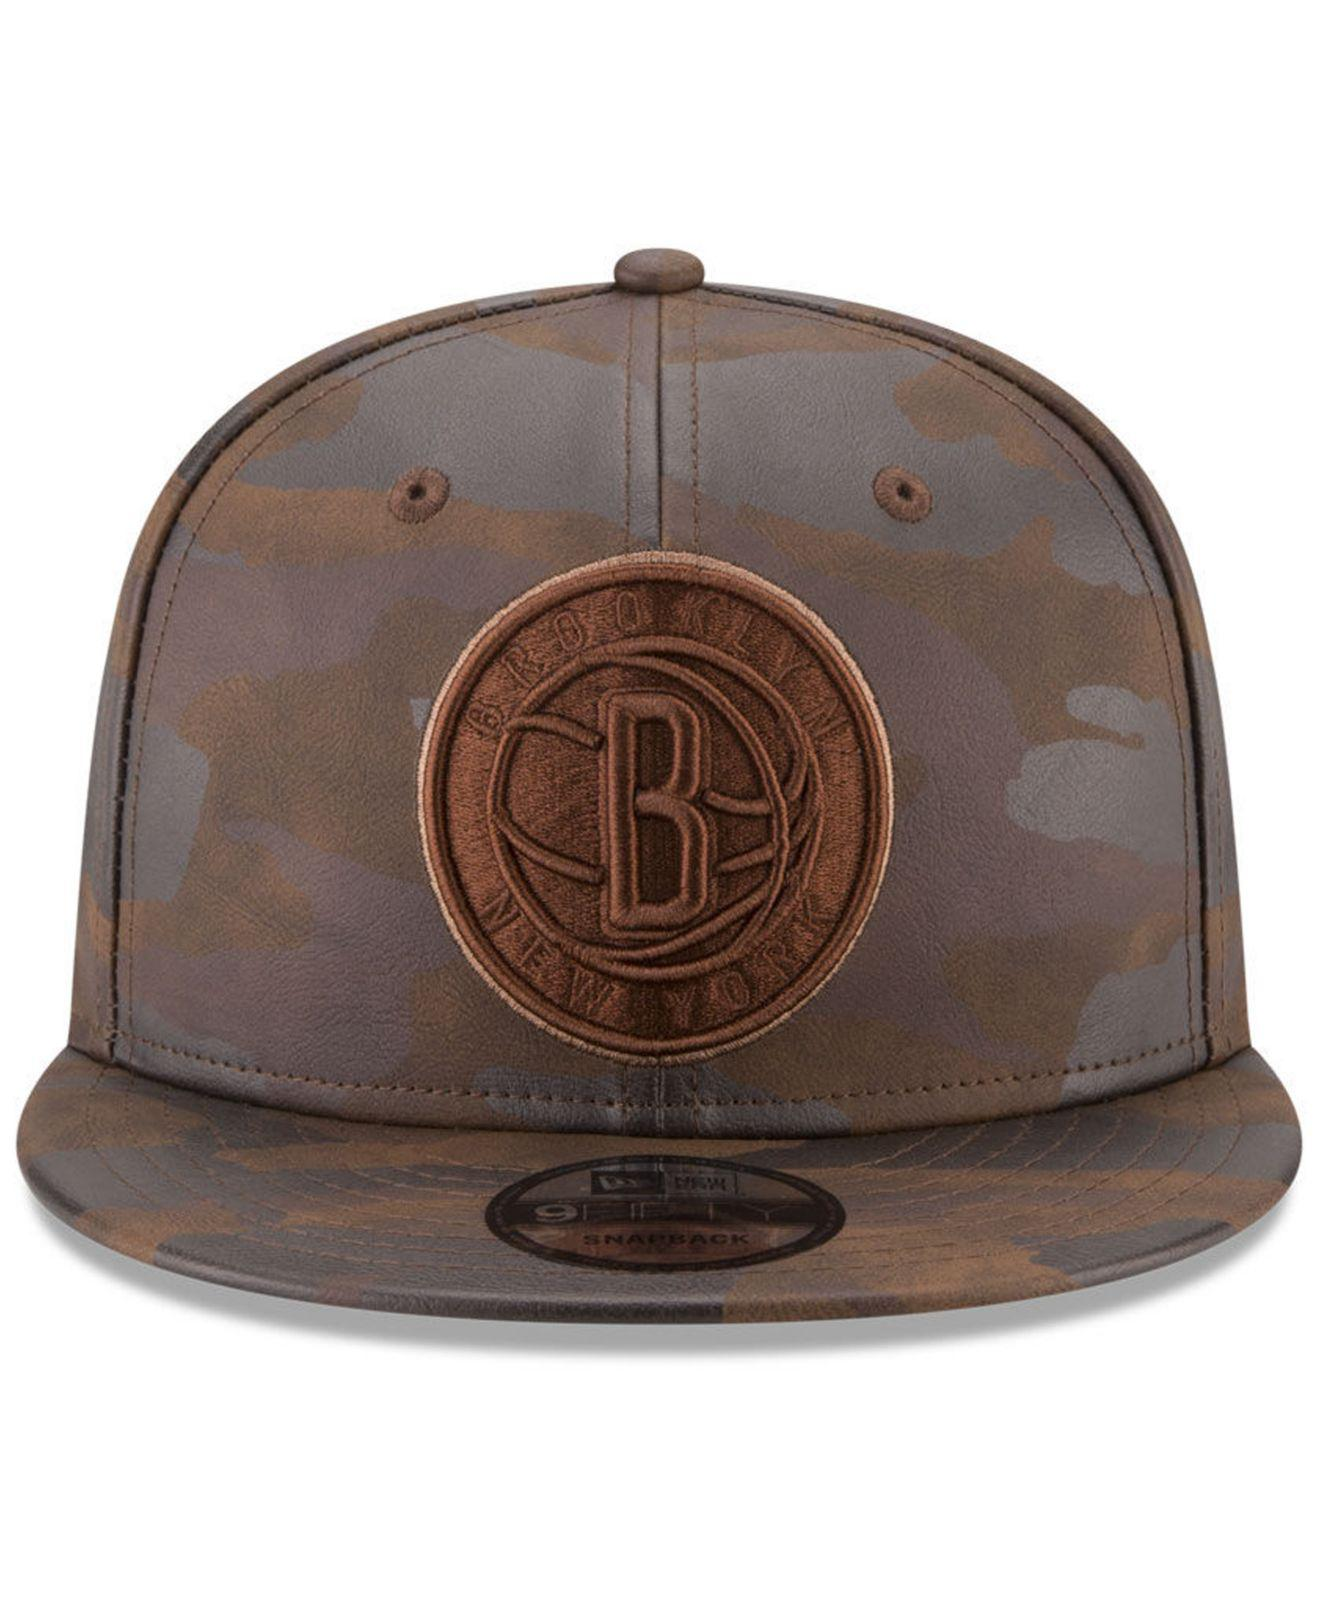 new product bfd0a 7ef76 ... sweden lyst ktz brooklyn nets butter so camo 9fifty snapback cap in  brown 1ecca 09f73